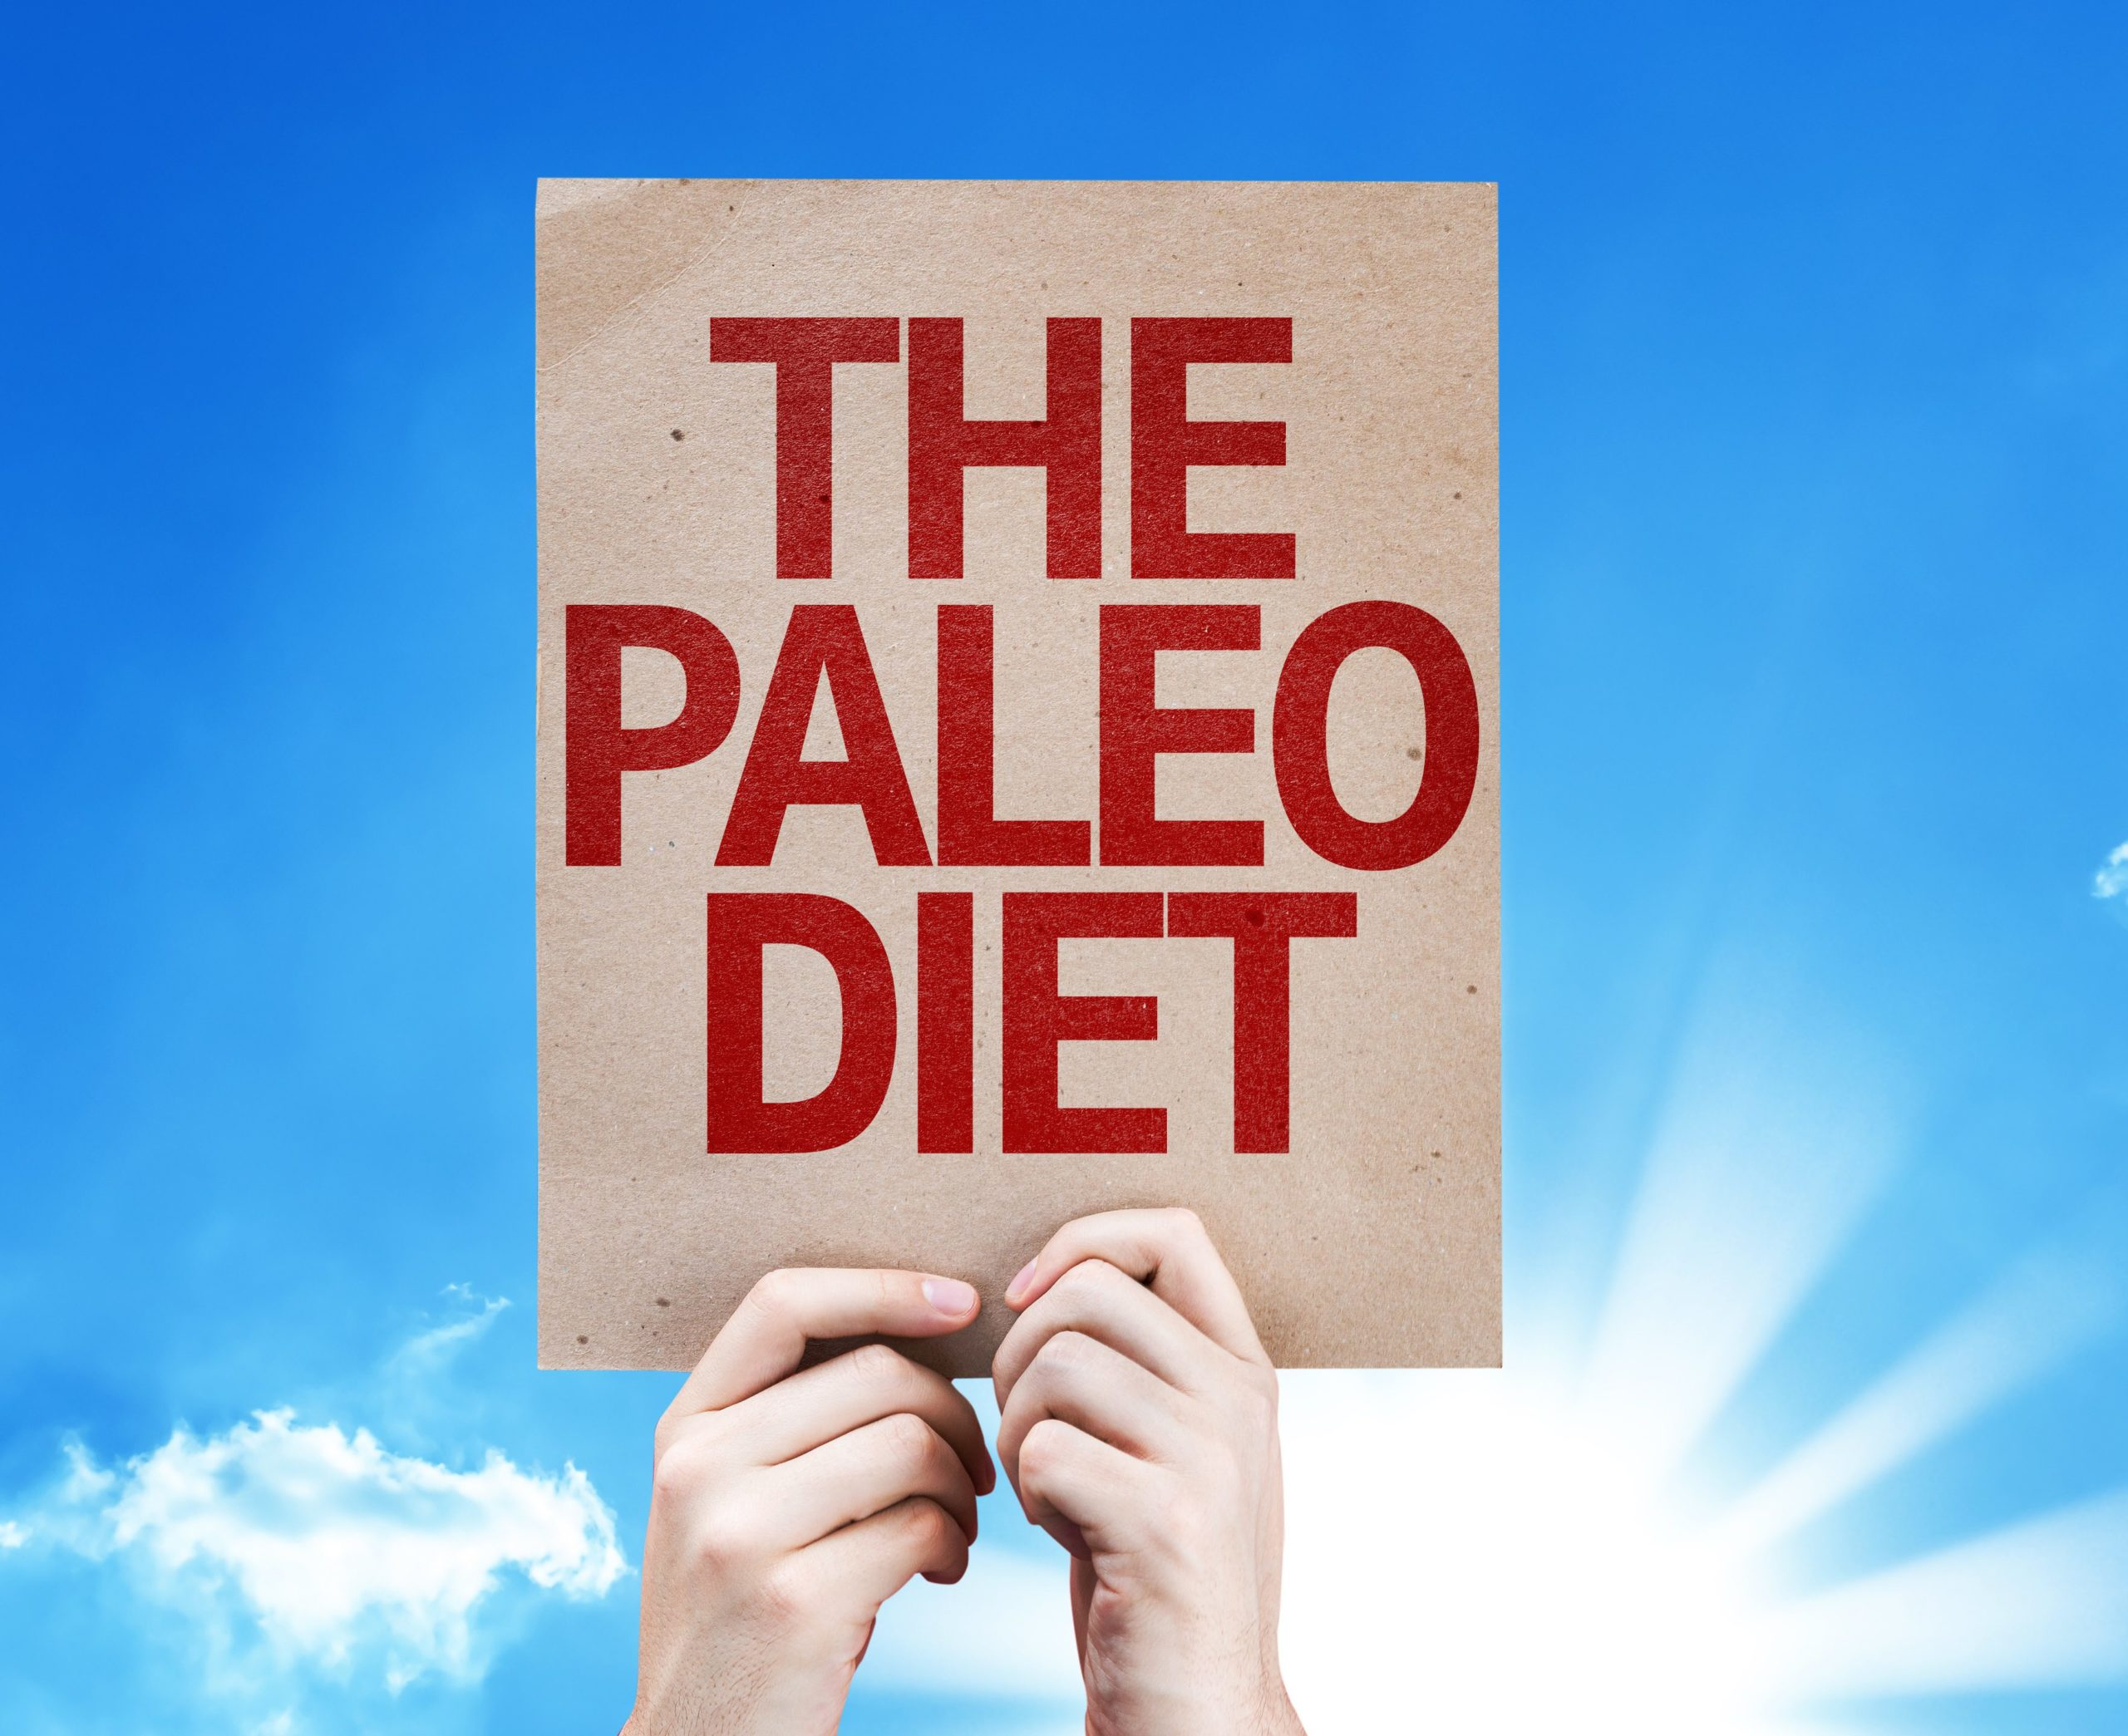 I'm trying the Paleo diet for the next 30 days